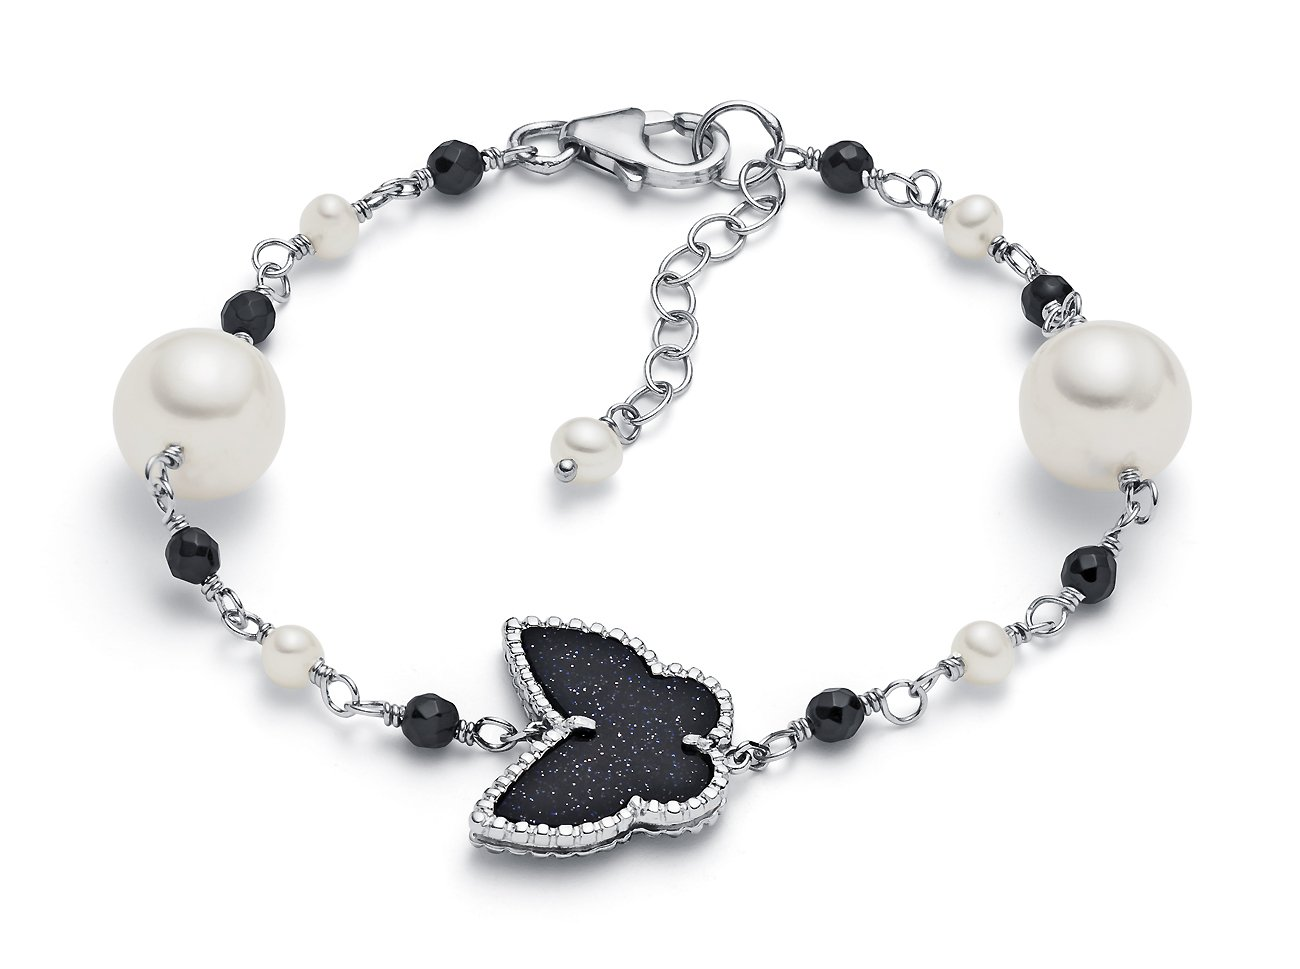 9.5-10mm Sterling Silver White Freshwater Cultured Pearl Tin Cup Bracelet AA+ Quality, 7''-8''